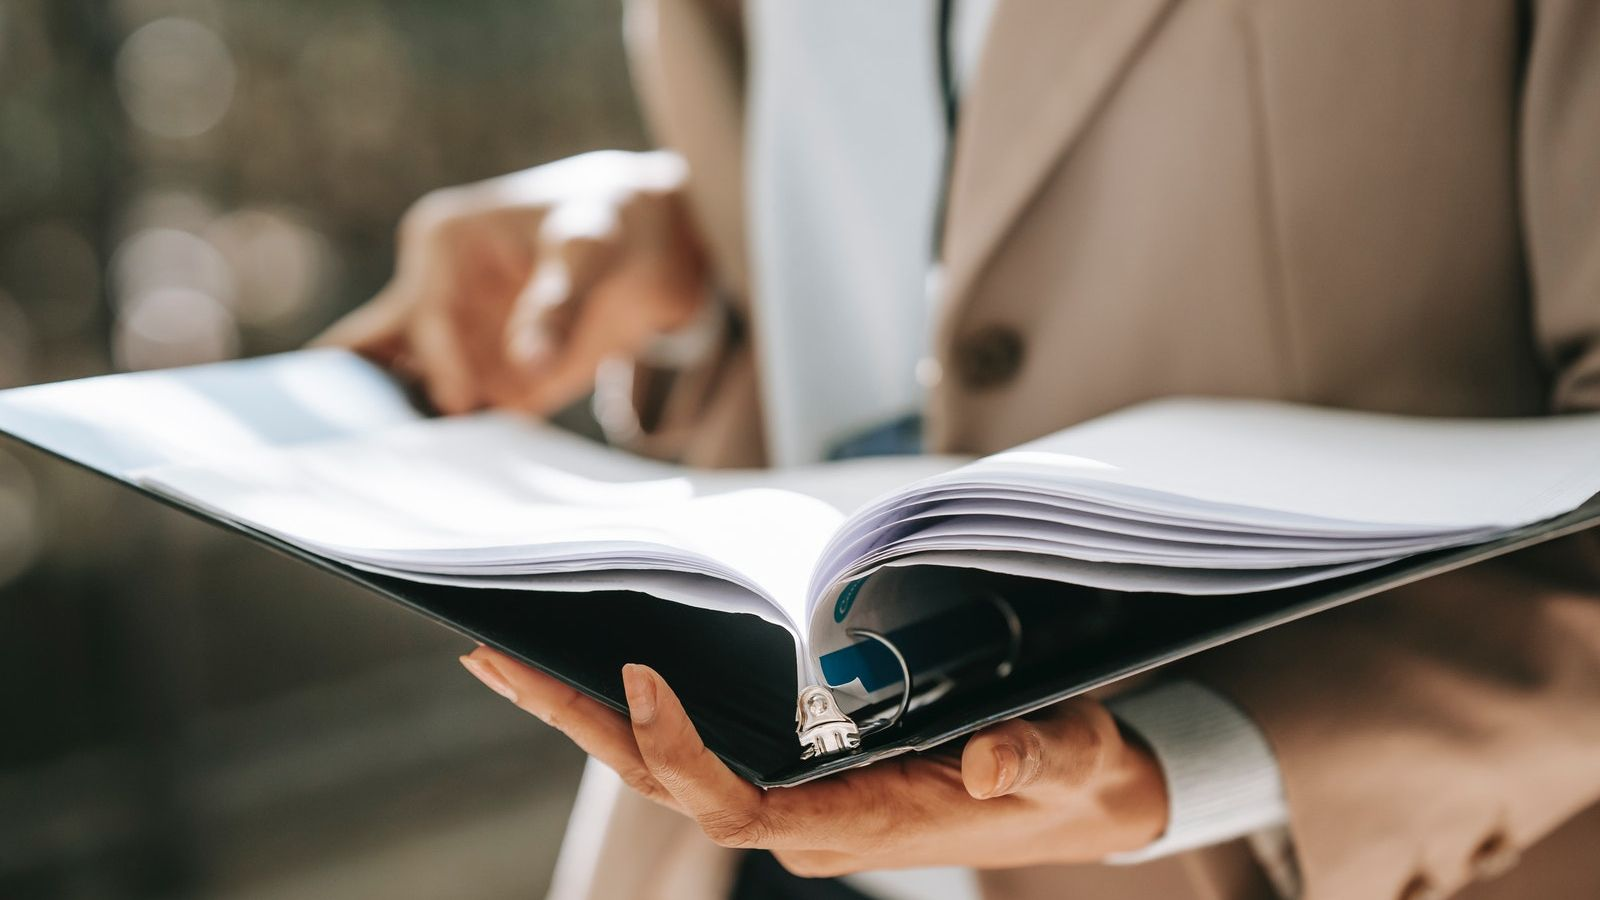 Woman's hands holding a black folder with white pages banner image